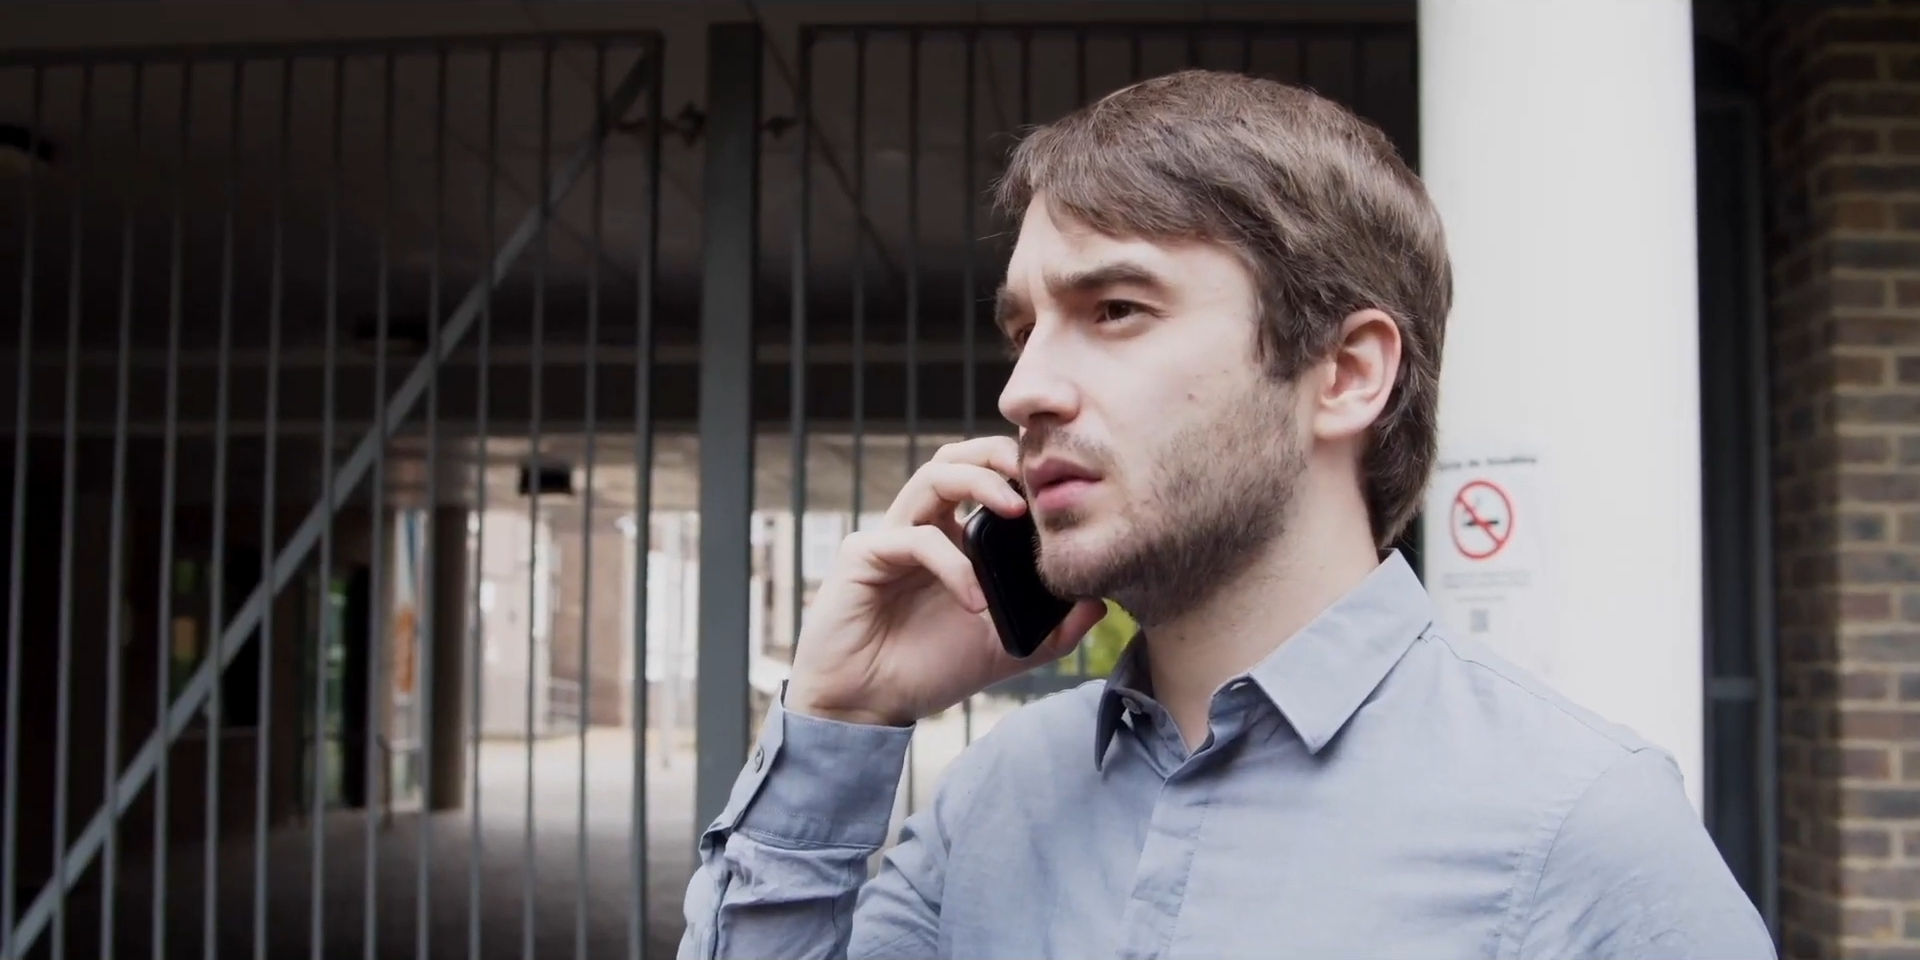 Still from short film Fraudsters featuring Alex Ayliffe, produced by Fresh Media Productions